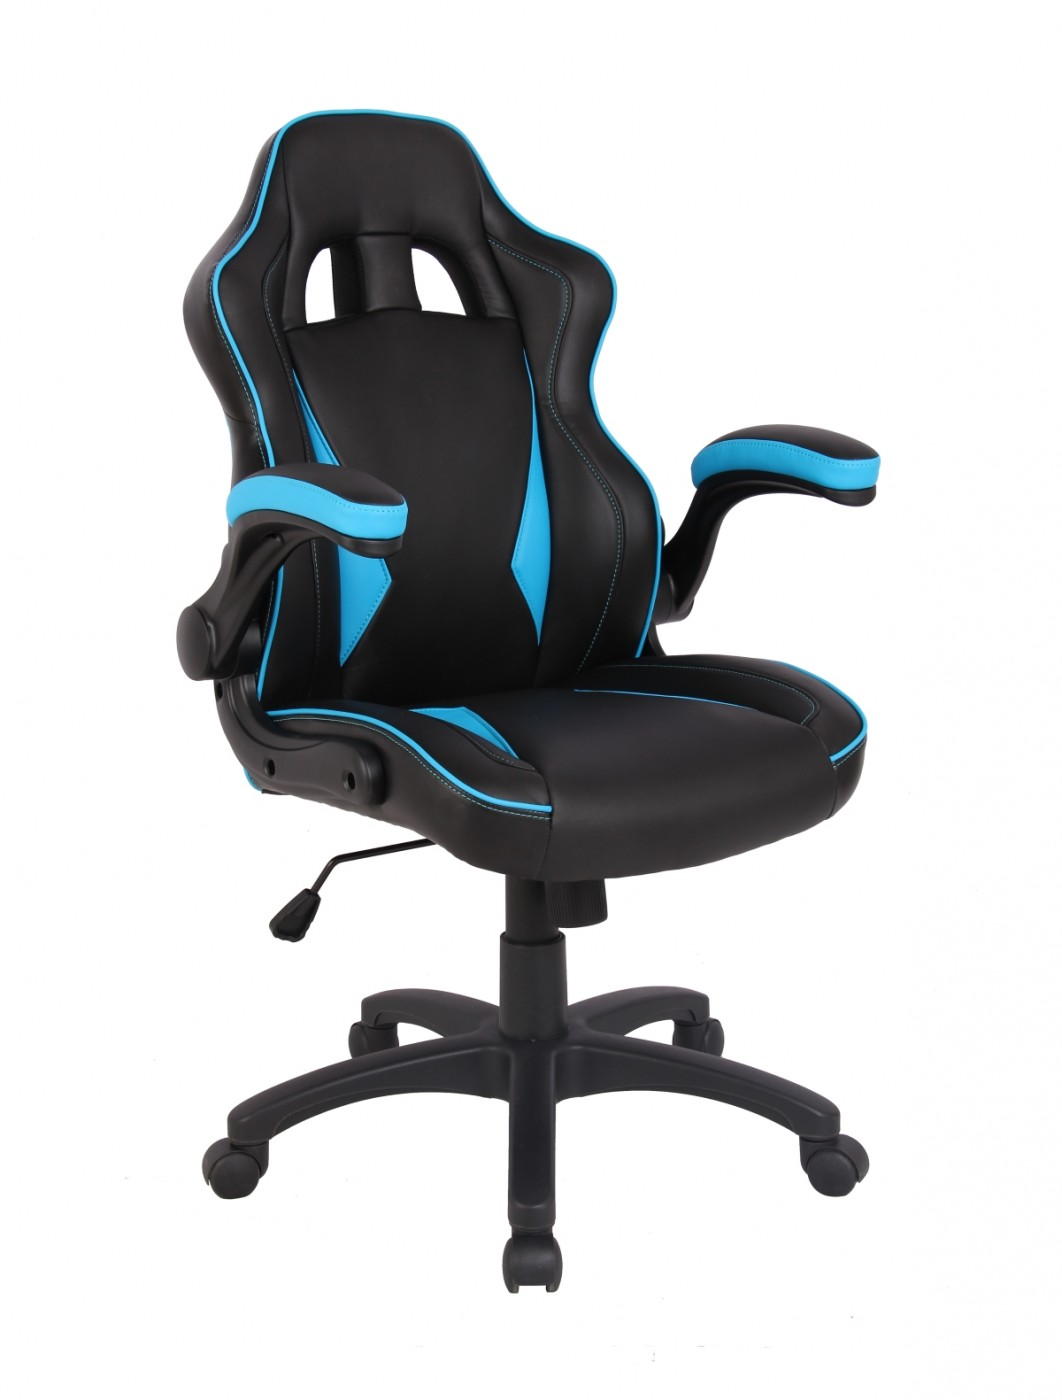 Cloud 9 Gaming Chair Leather Managers Chair